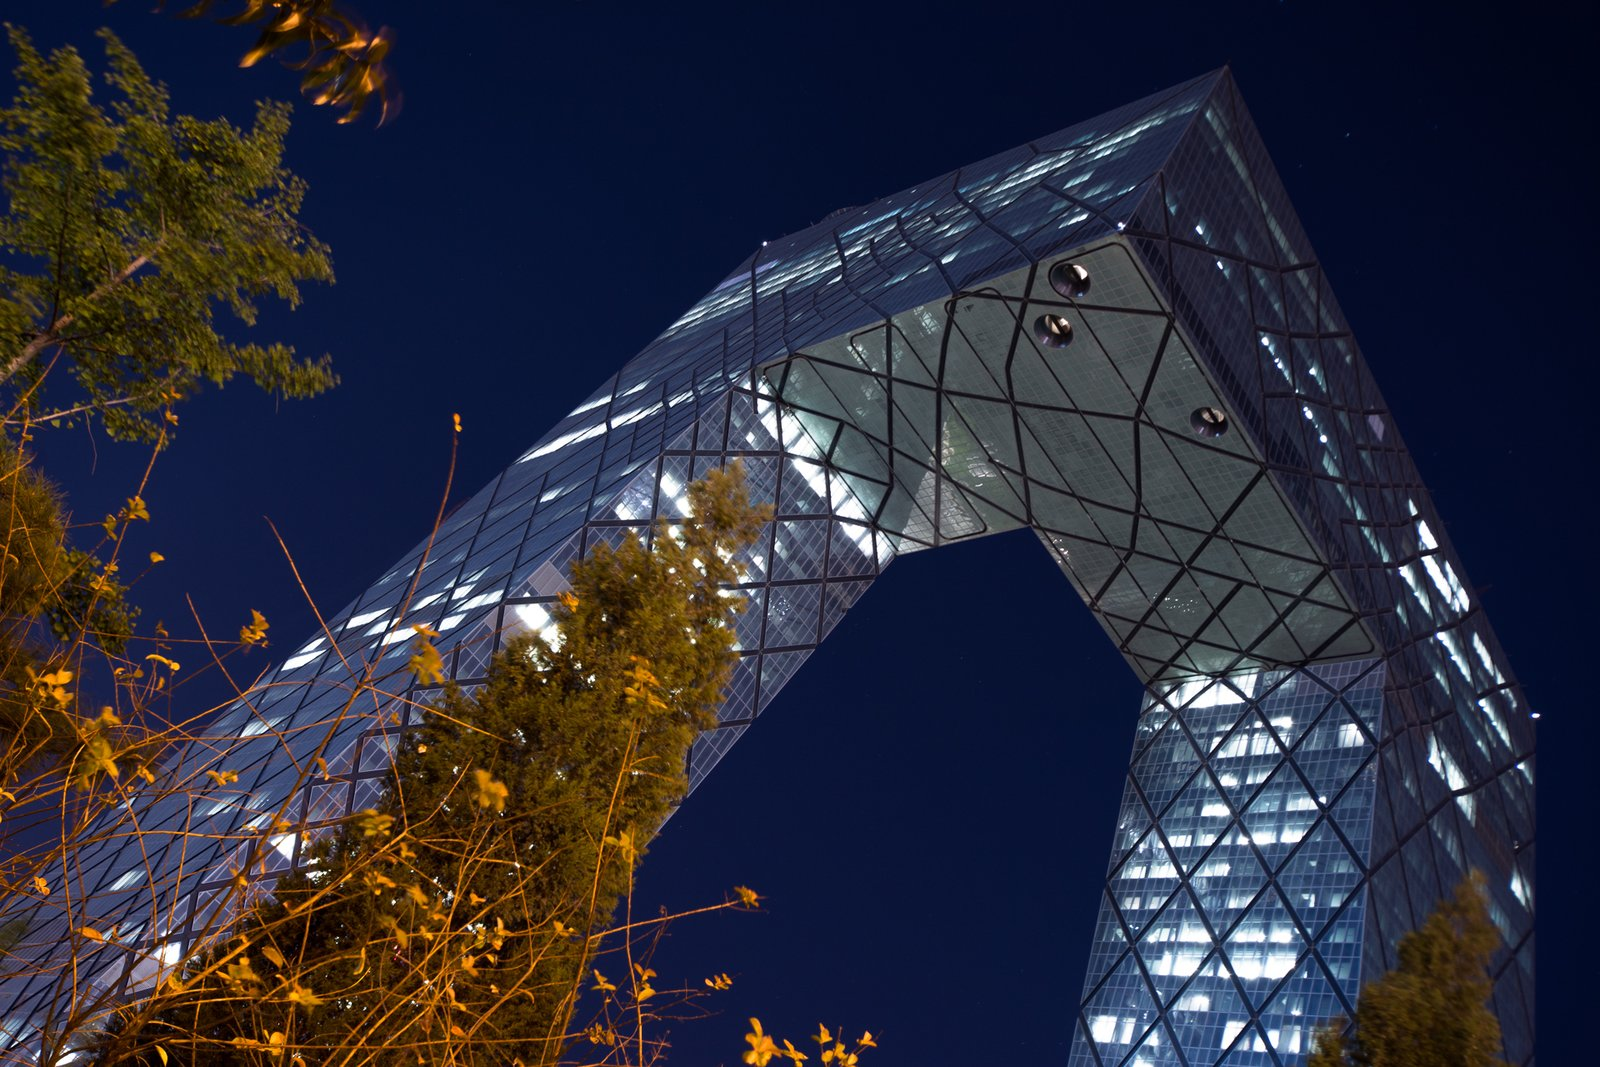 The CCTV tower designed by Dutch architect Rem Koolhaas was meant to be the headquarters for China Central Television when builders broke ground in 2004, but it was only over the past year that CCTV staff started moving into the building in significant numbers.  Photo 4 of 10 in 10 Places to Visit in Beijing